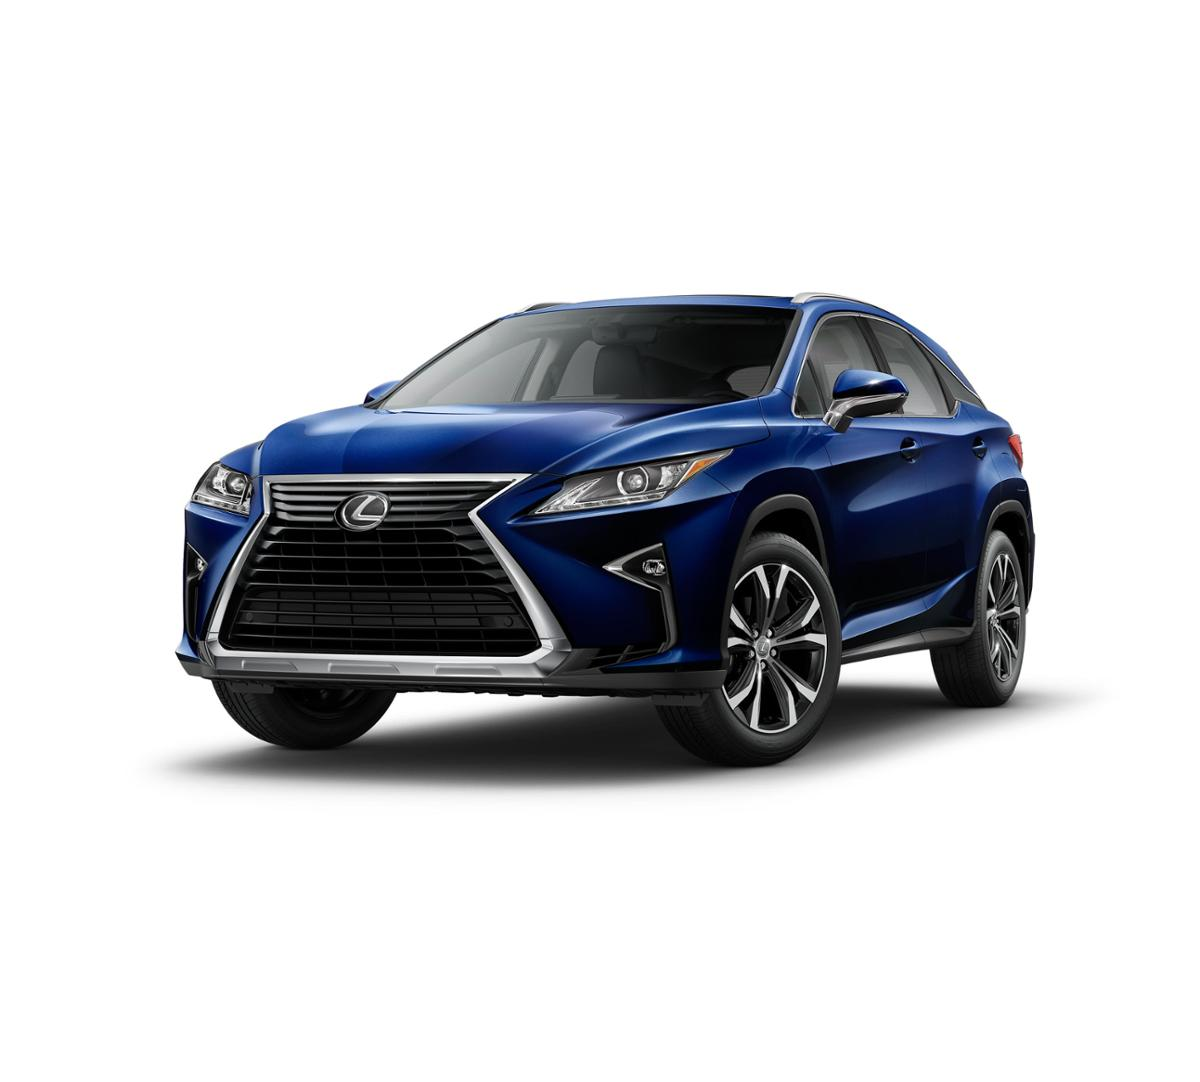 2017 Lexus RX 350 Vehicle Photo in Larchmont, NY 10538